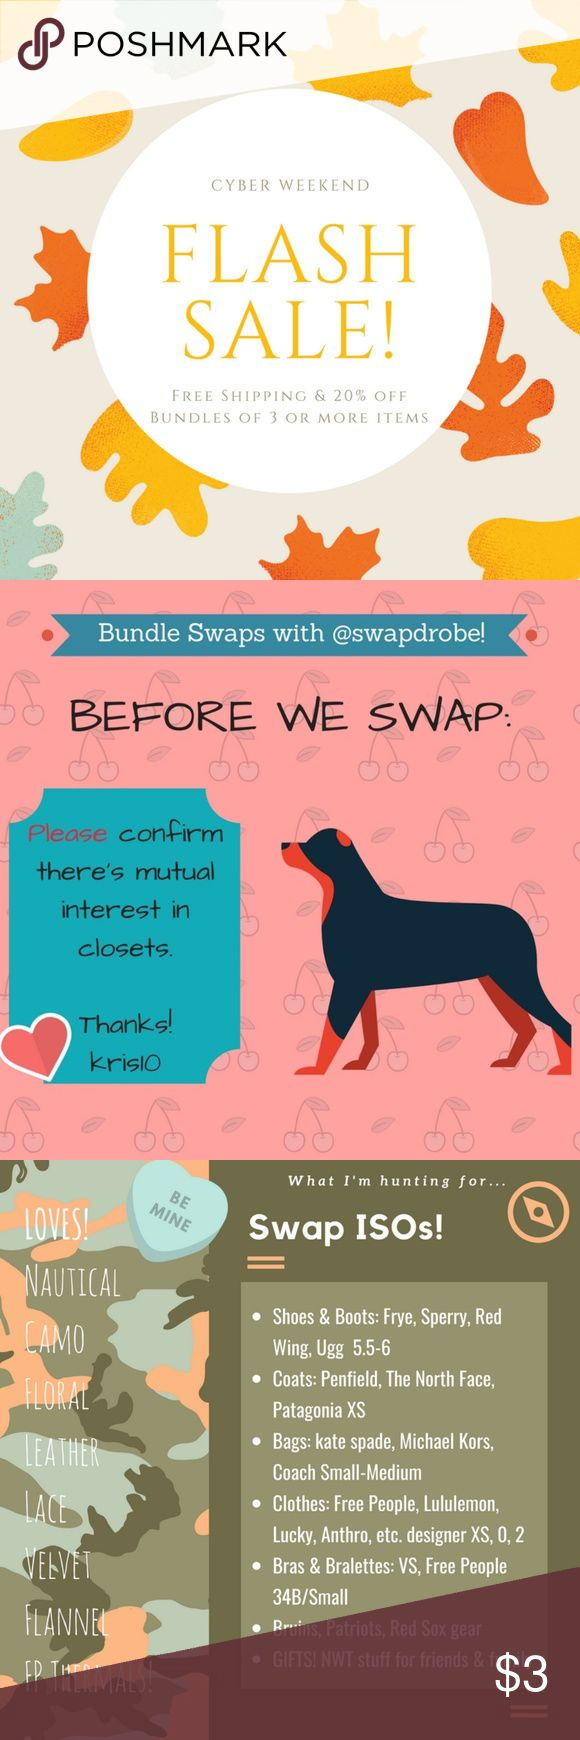 Free shipping on bundles of 3 or more! Cyber weekend deal!   FREE SHIPPING on bundles of 3 or more + 20% off, through Monday only!  If you want to swap, let me know and I'll see if we can work something out, pretty! Swapdrobe Dresses